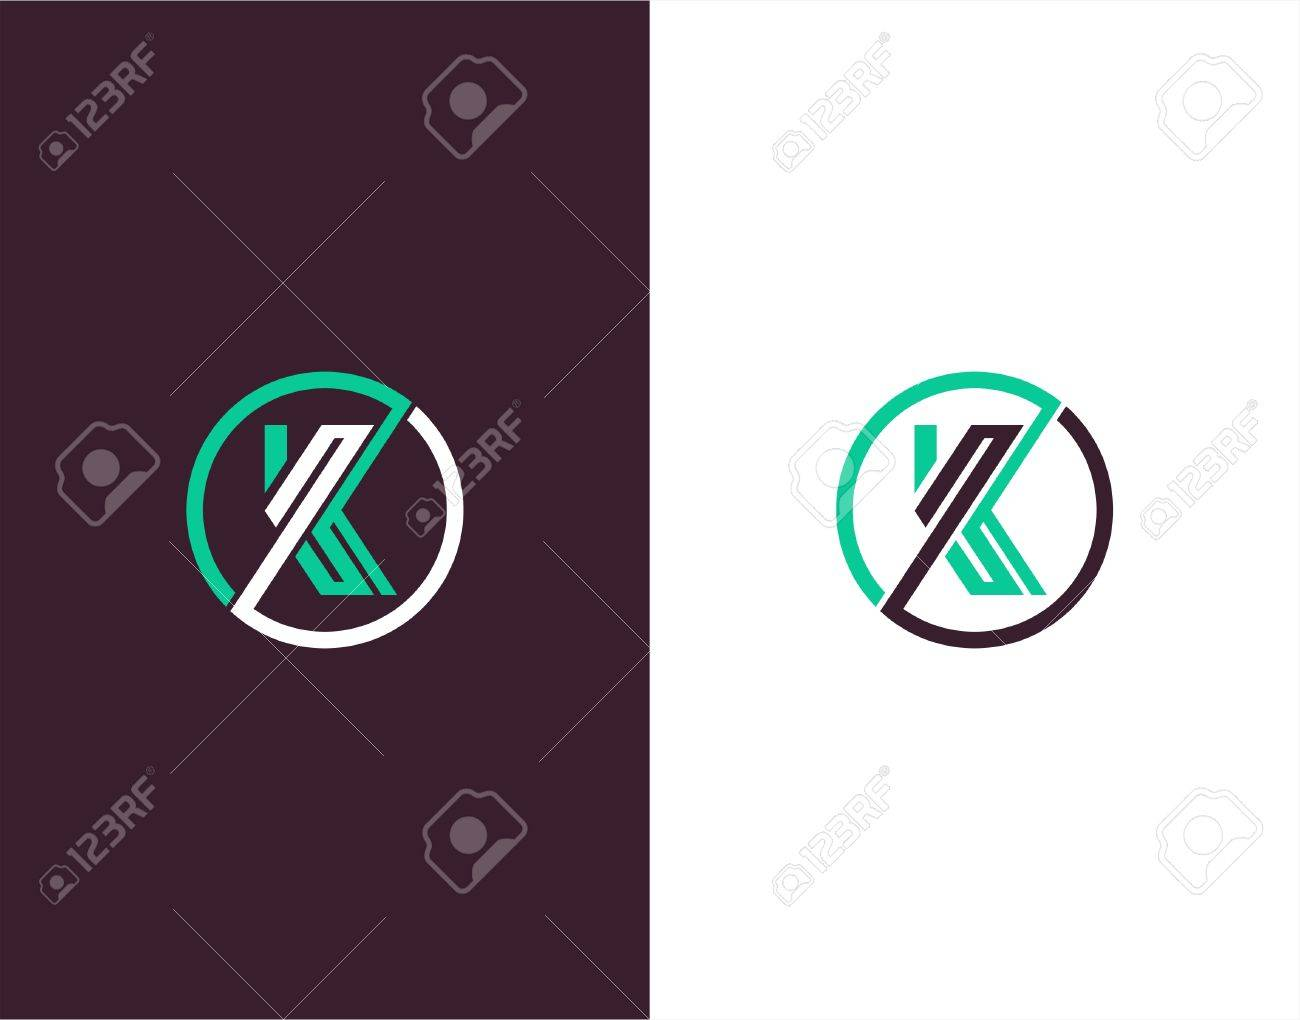 Line Art Design Abstract : Letter k abstract vectore template line art logo royalty free